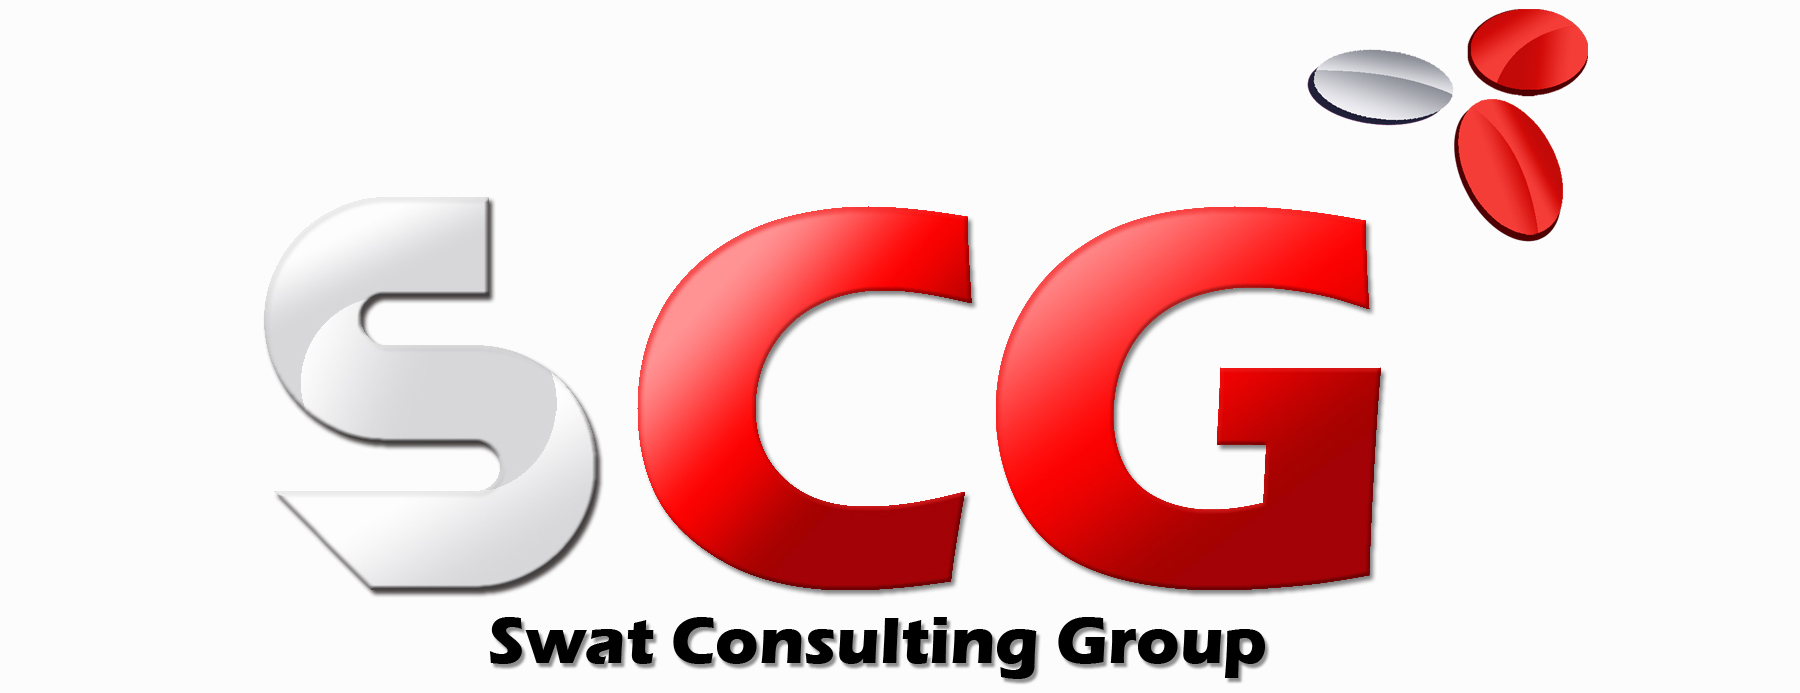 Swat Consulting Group